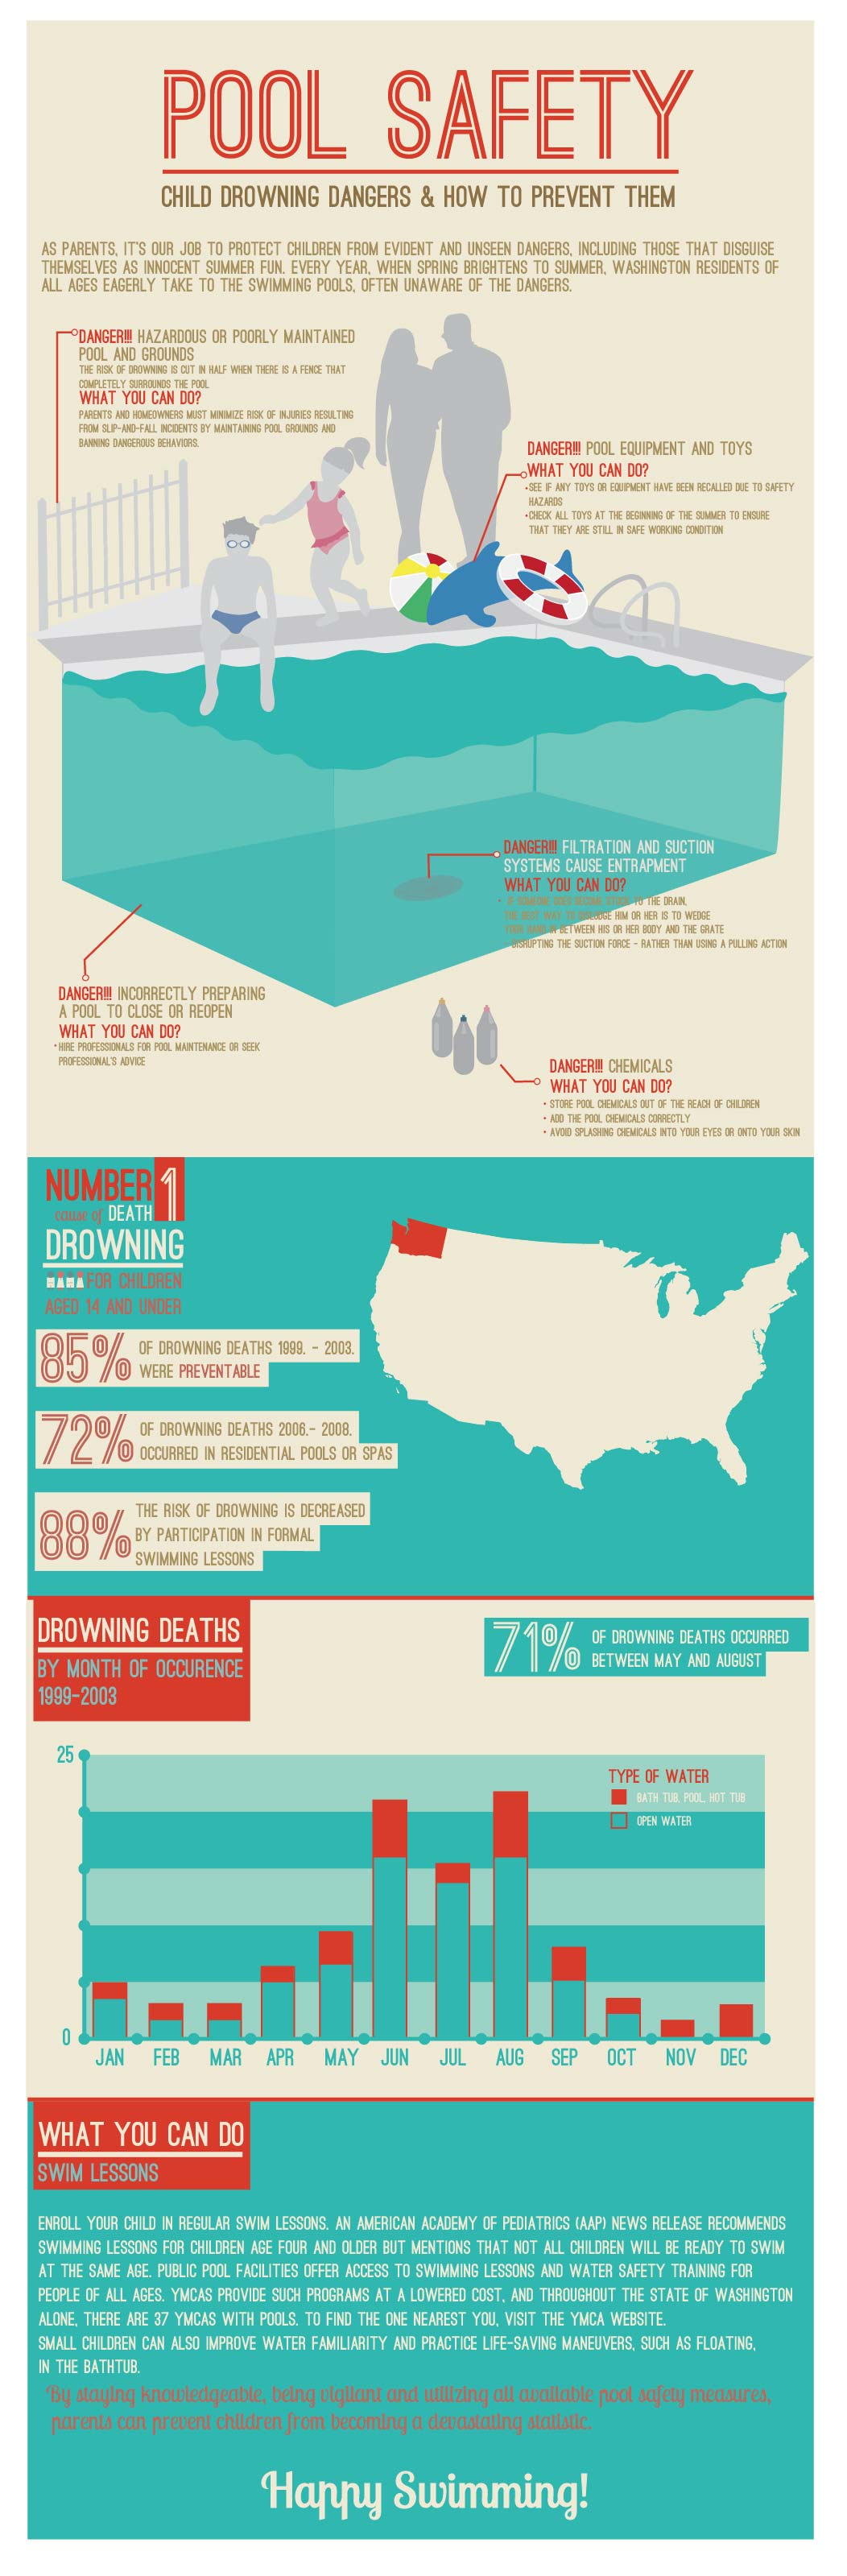 Pool Safety Infographic For Obu Interactive By Millyy